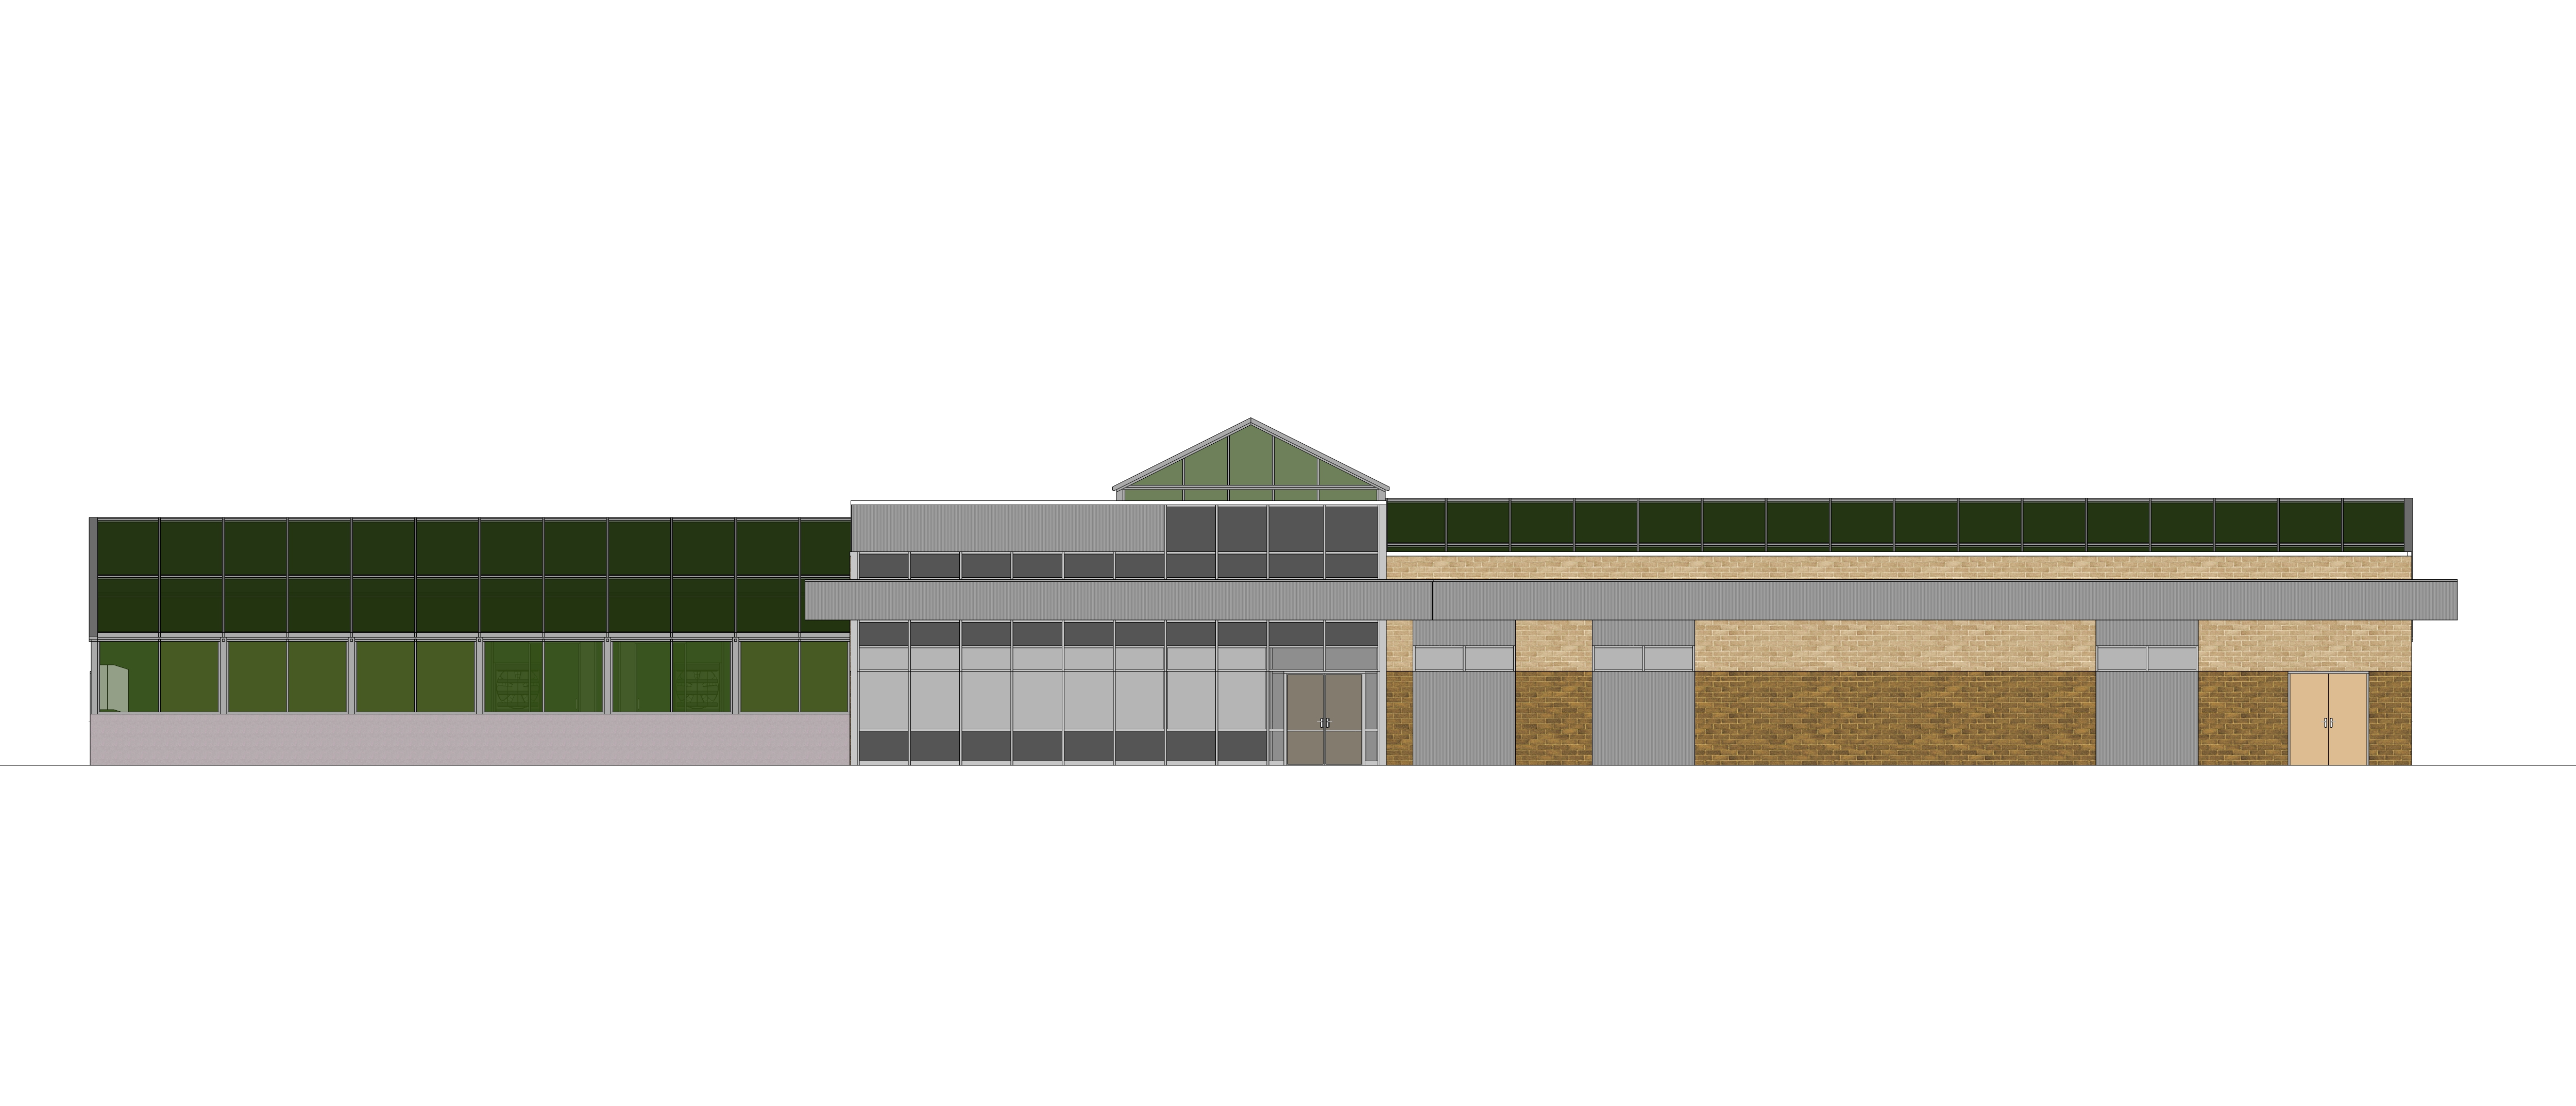 PERC SketchUp model elevation view